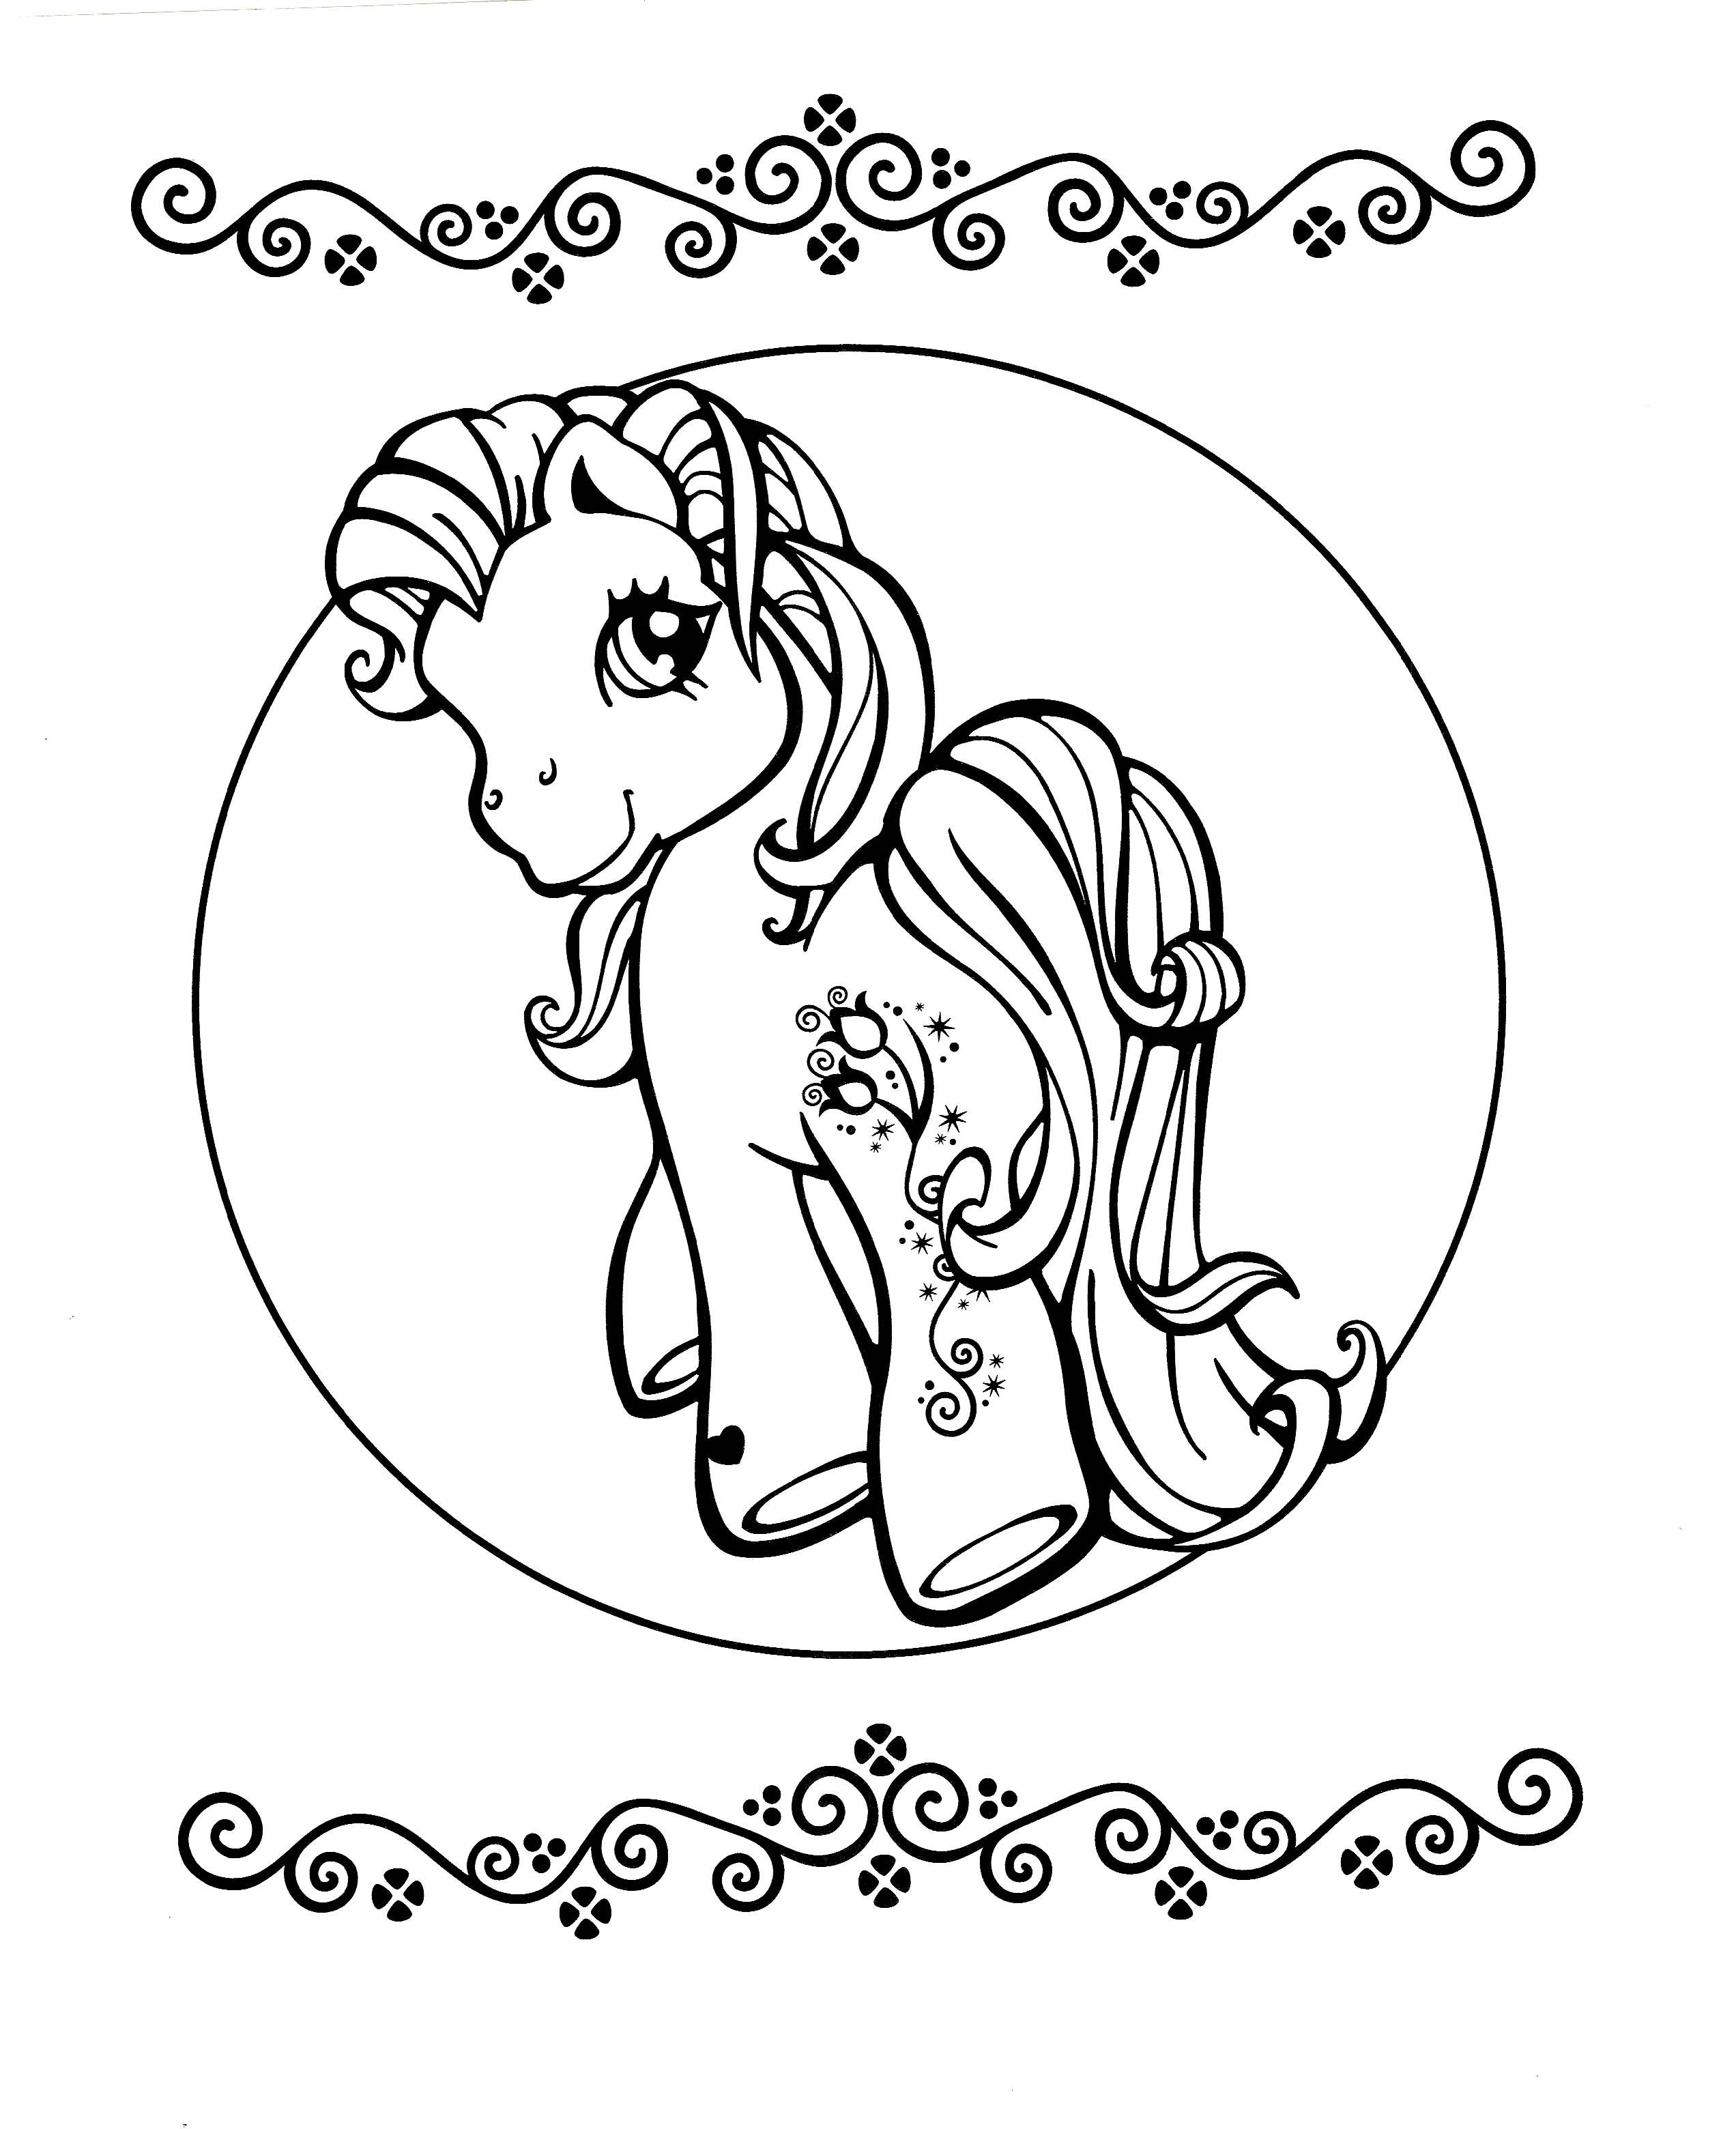 Pin By Angela Holmes On Coloring Pages